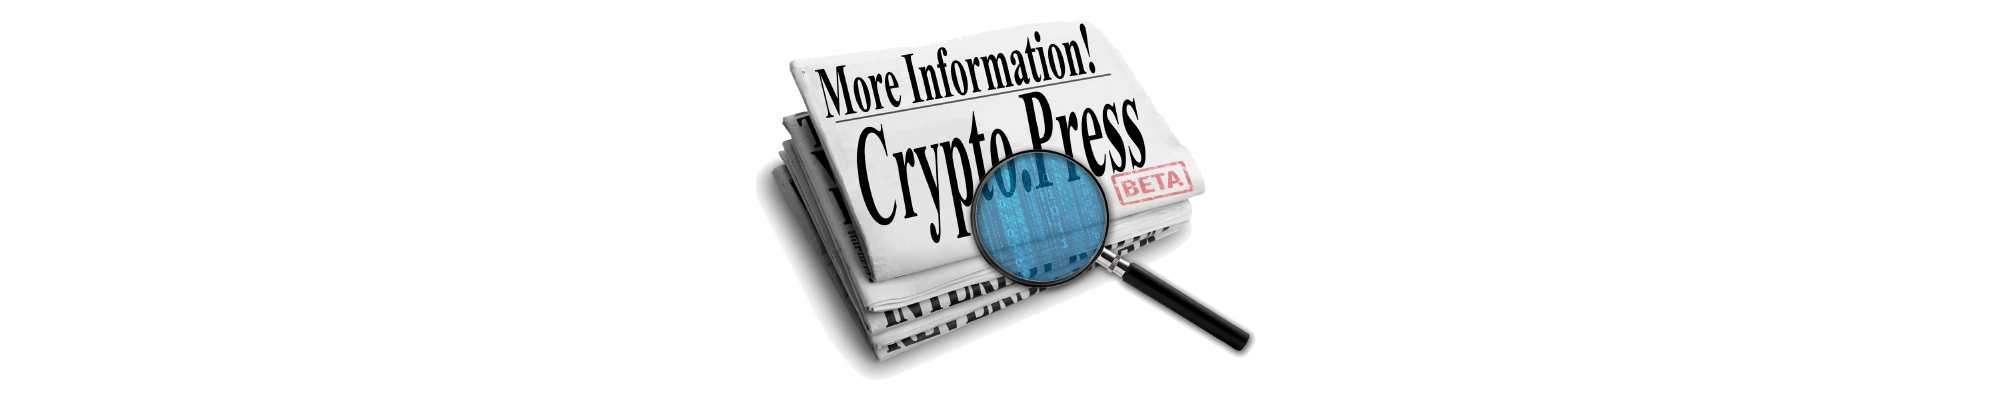 Crypto.Press, More Information!